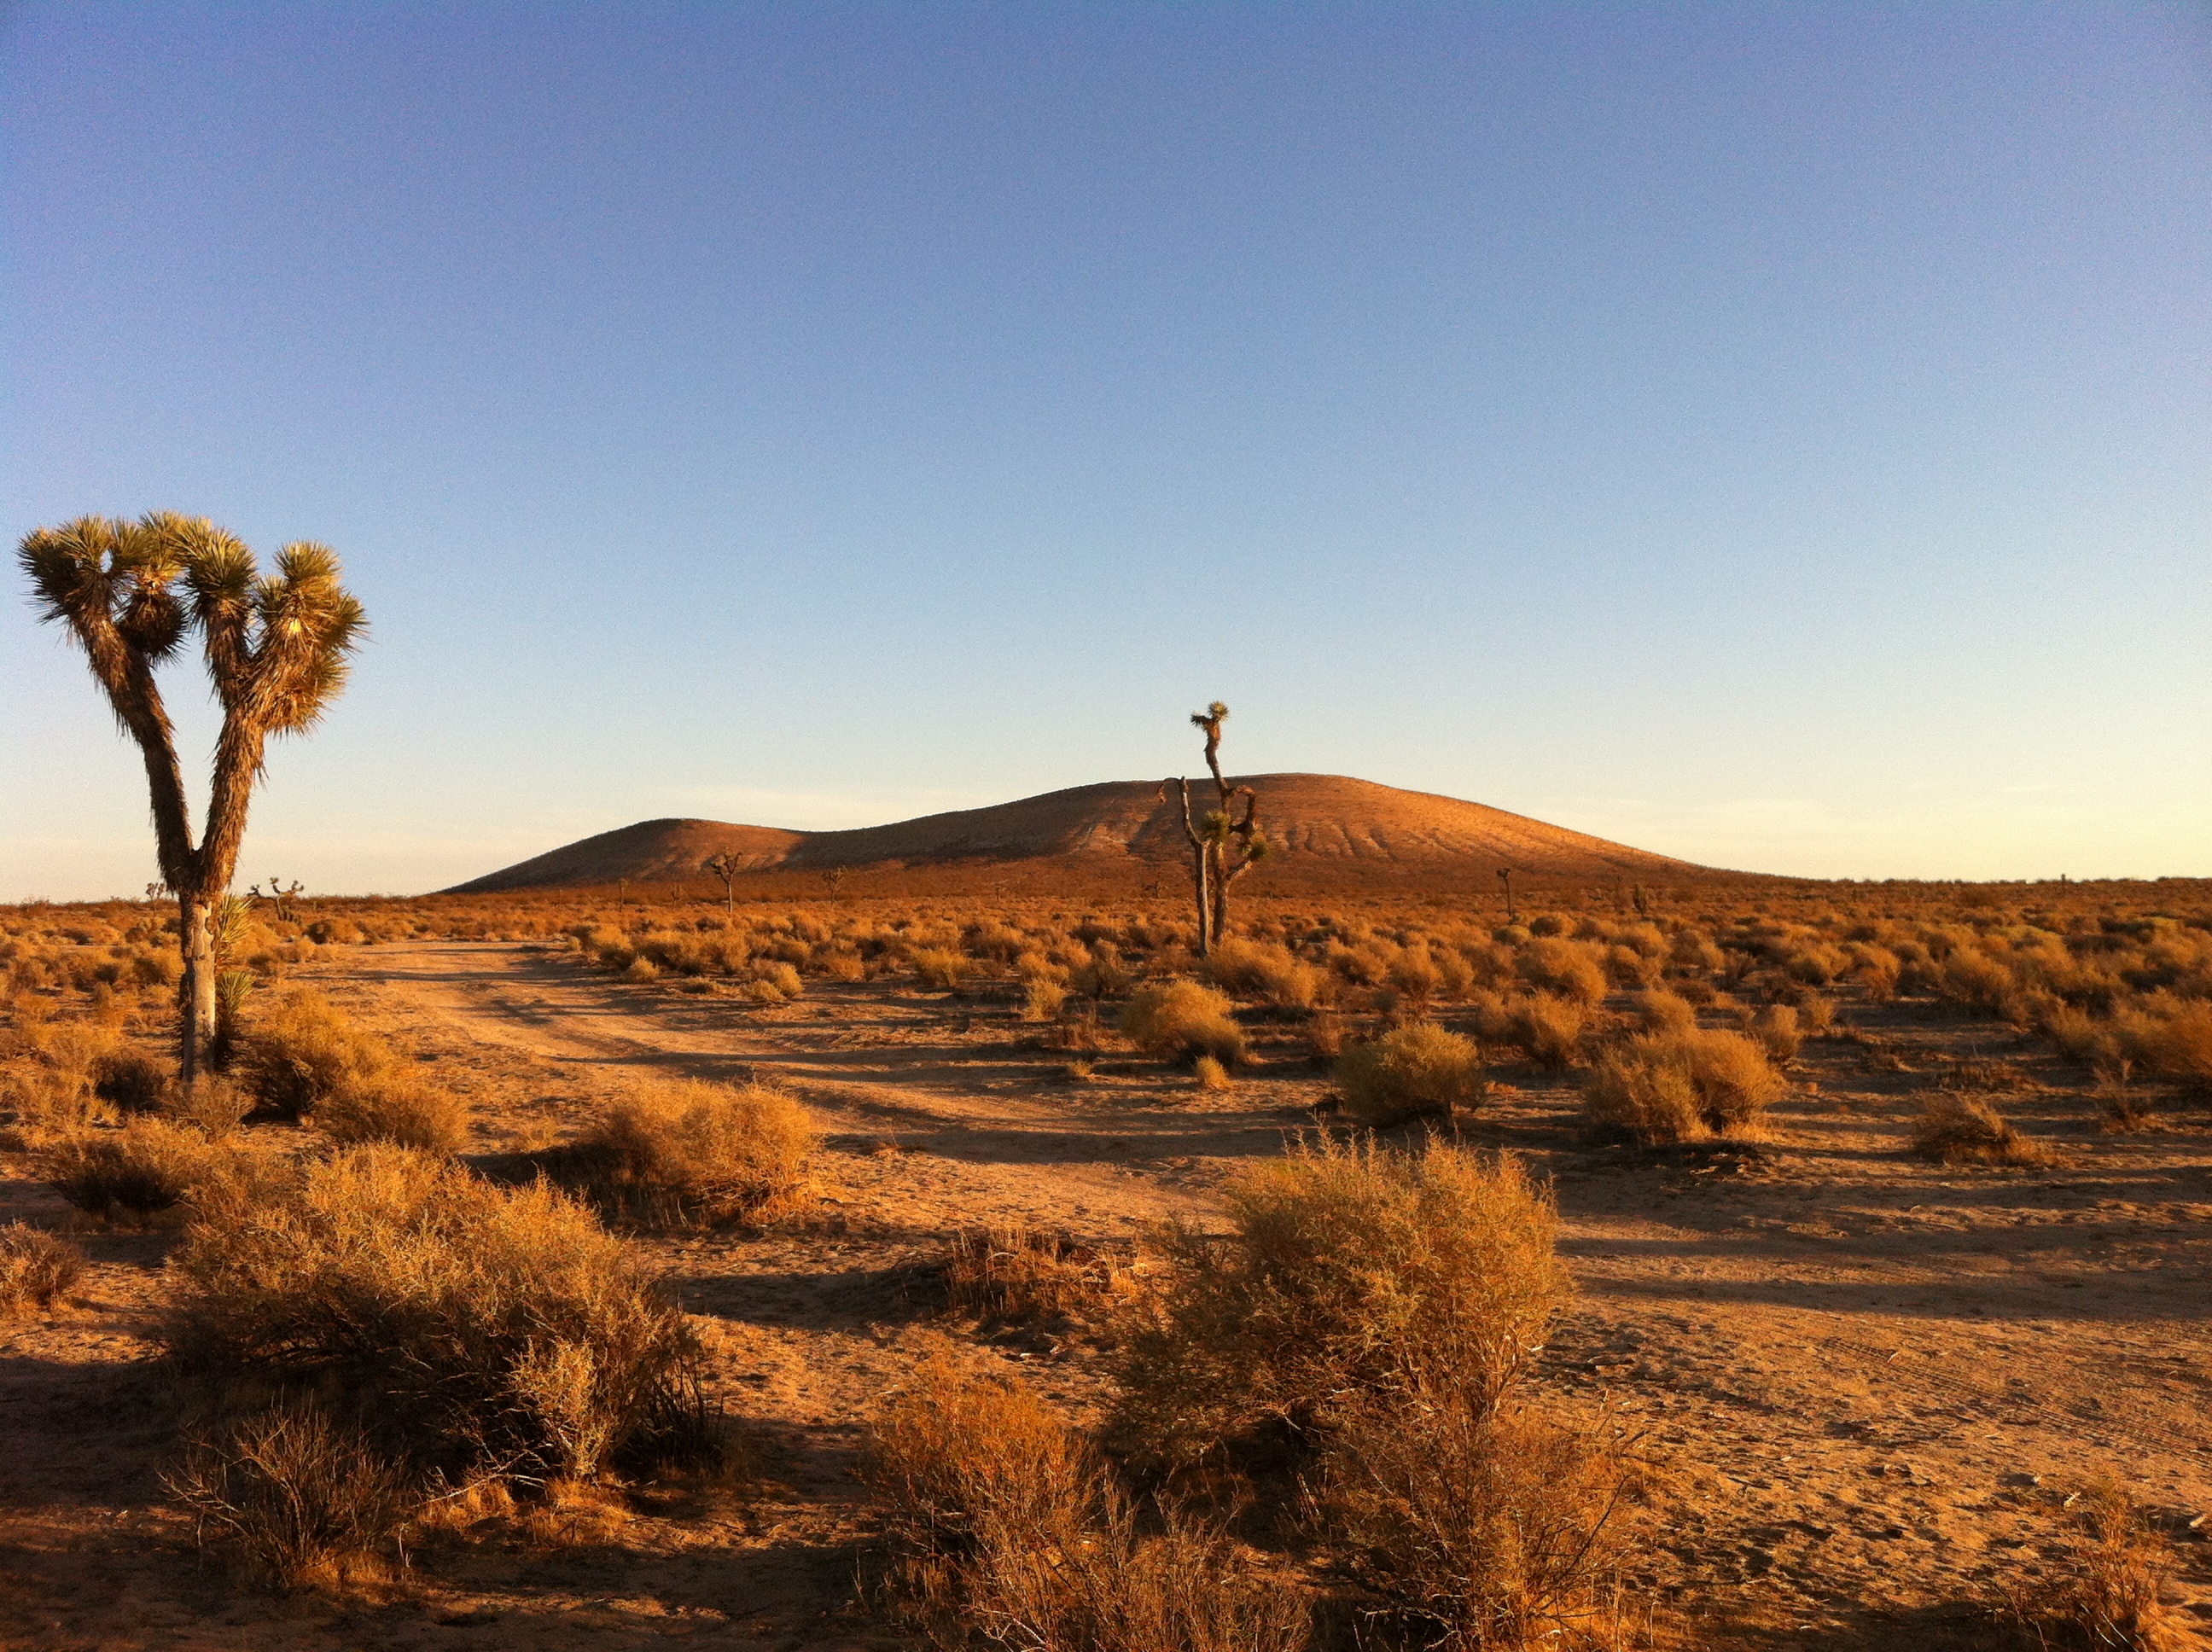 UltimateGraveyard Mojave Desert Filming & Photography Location - Joshua Trees & Sunset Mountain View